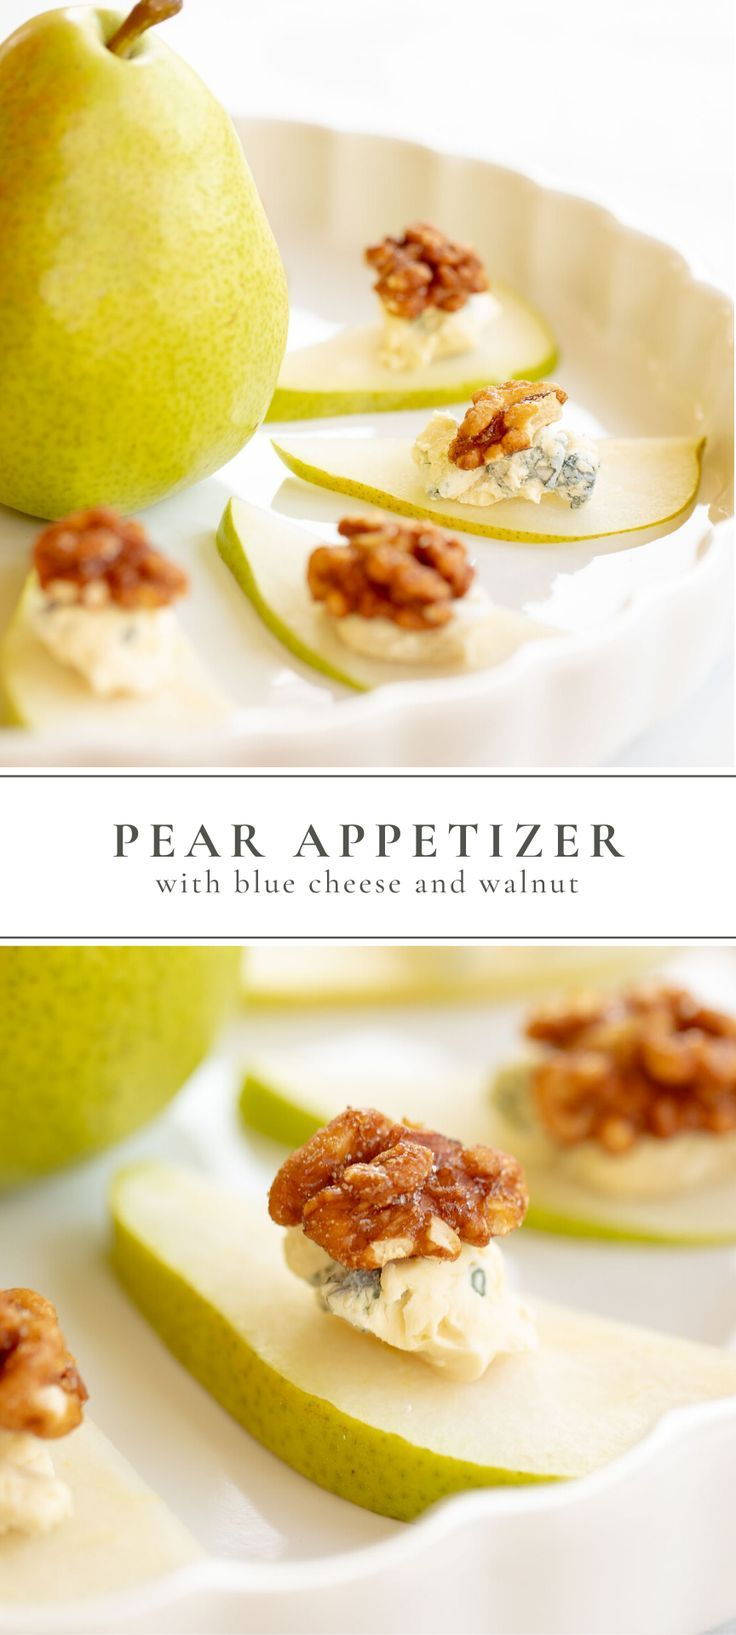 Easy Pear Appetizer A Healthy Holiday Appetizer | Julie Blanner